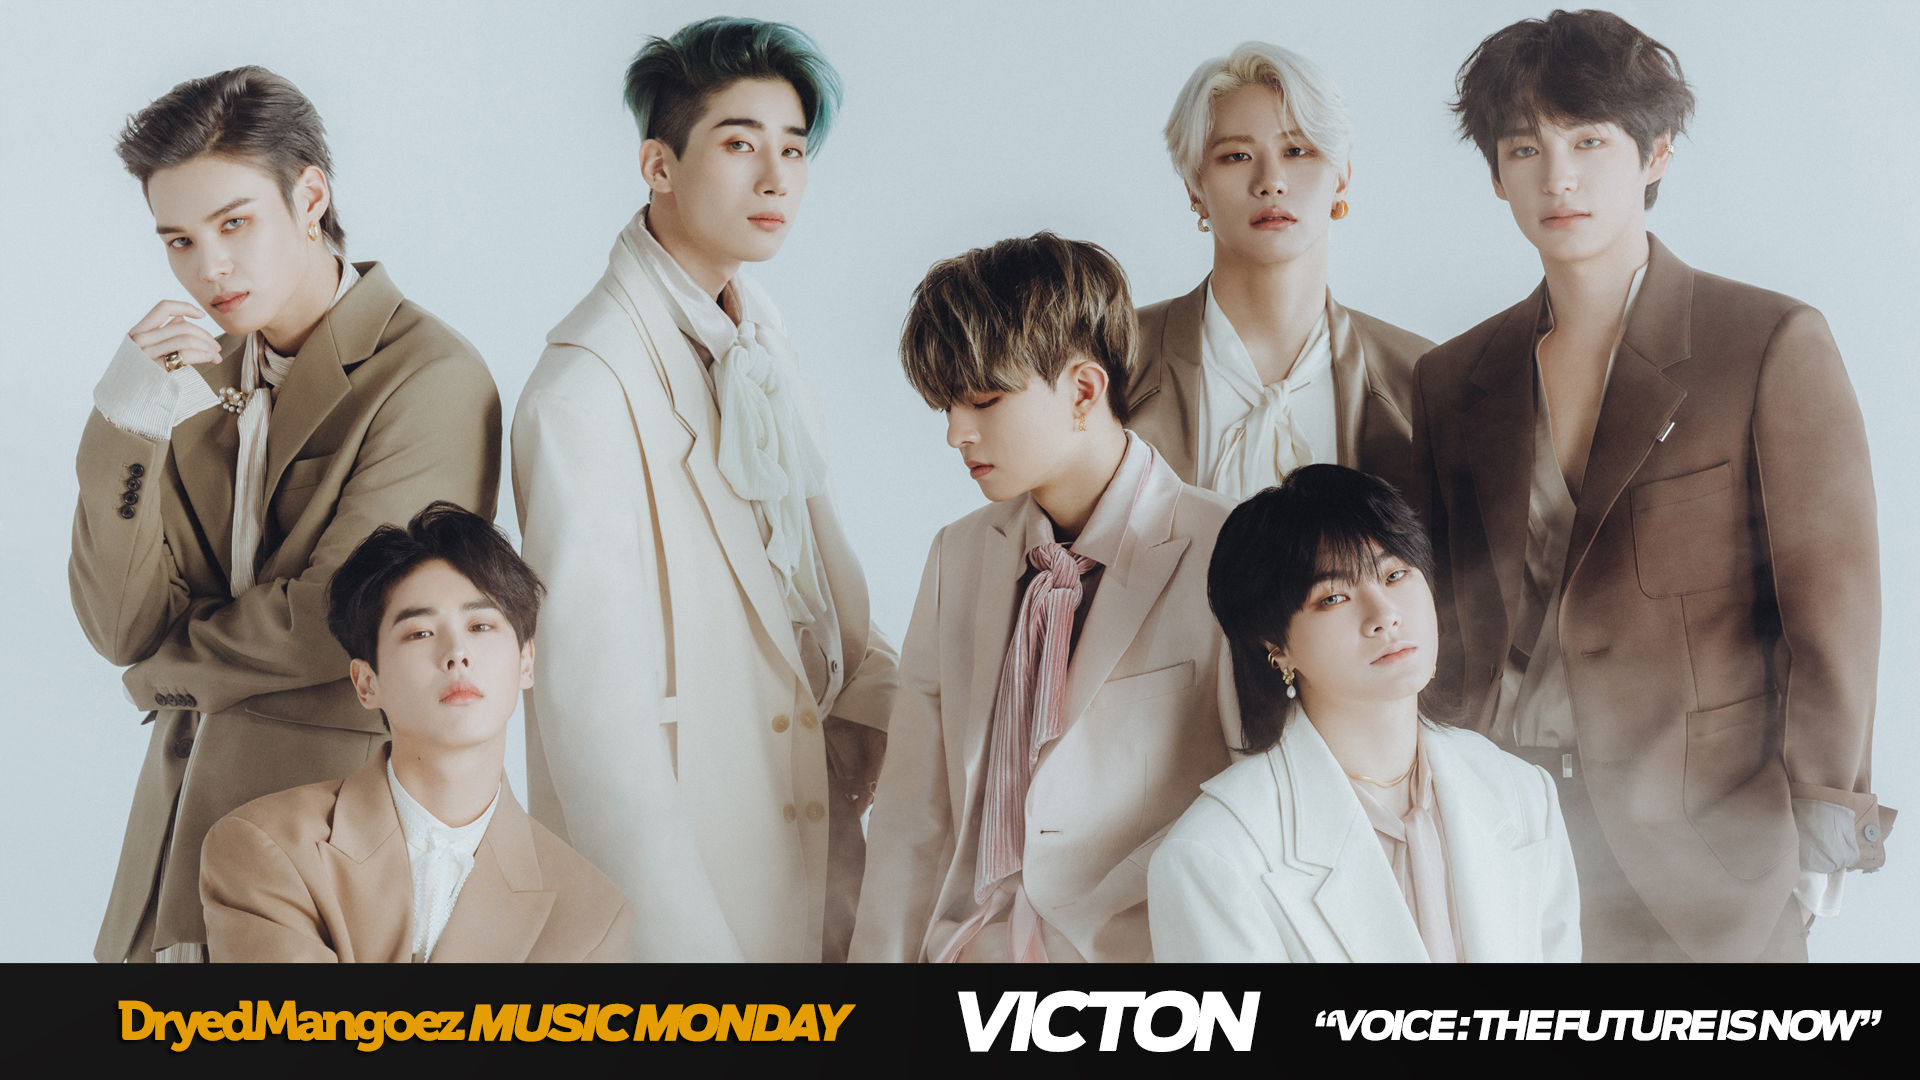 Music Monday, January 18, 2021 – Confident and Diverse, VICTON Releases Strong First Full Album